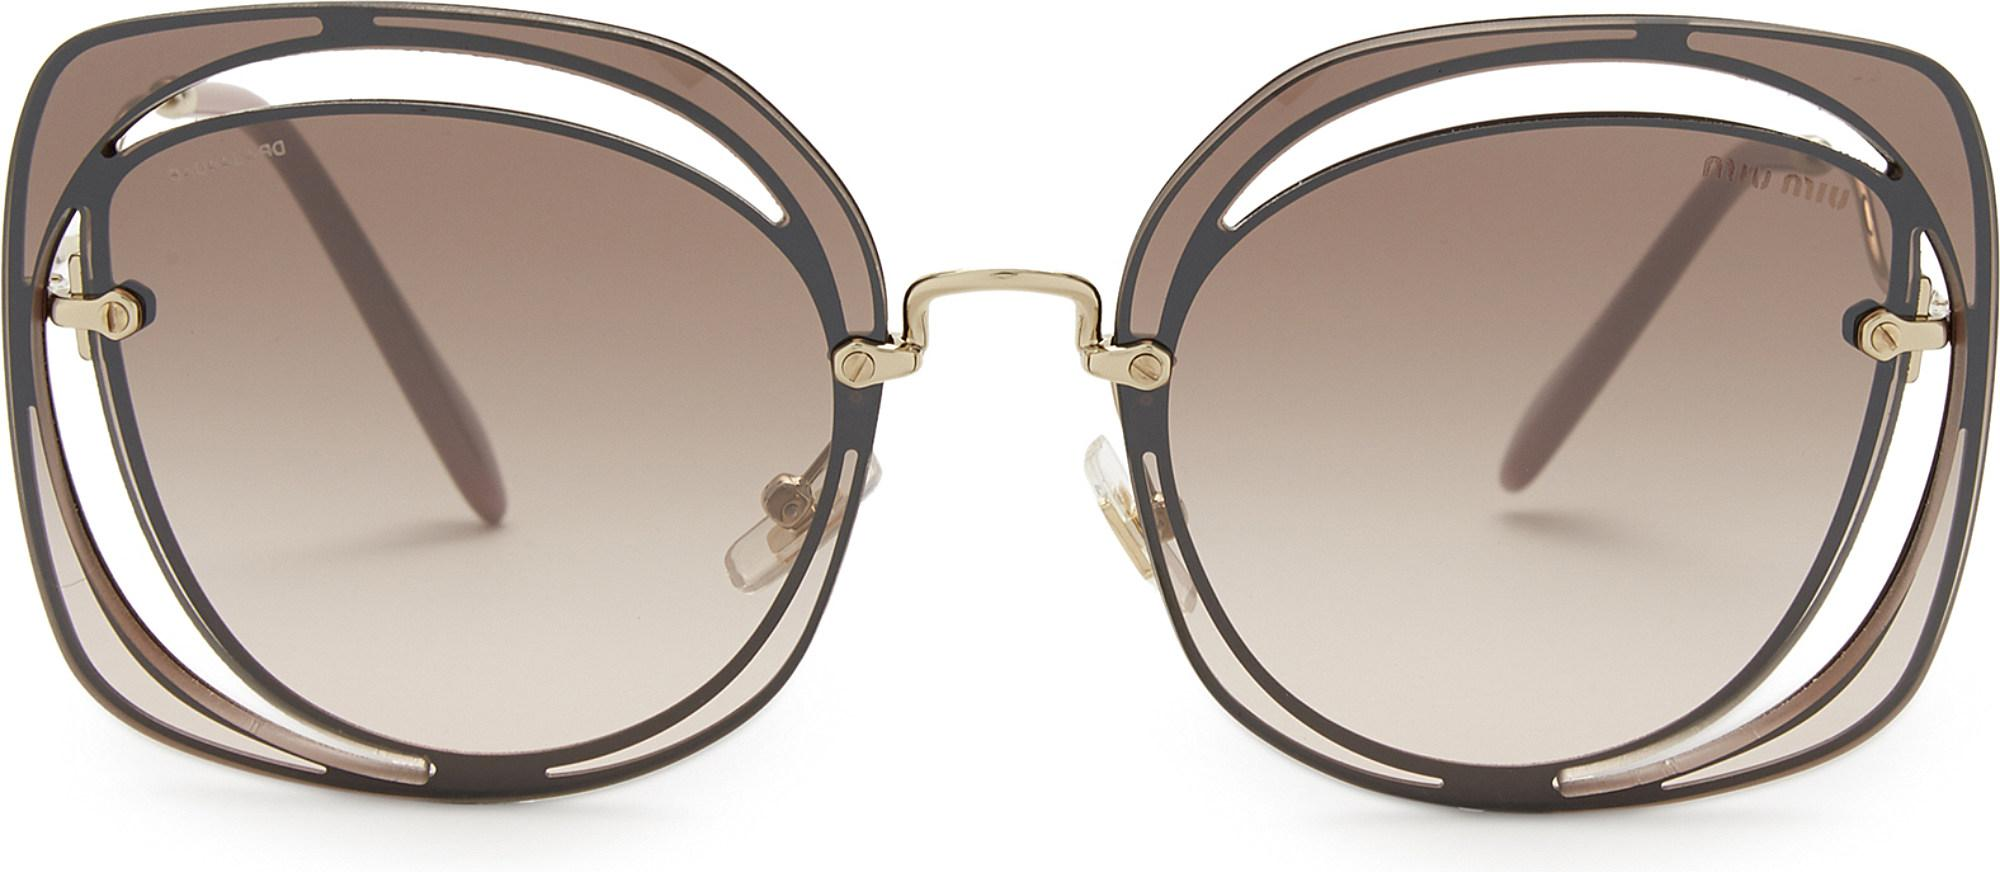 8bfae3a07f3 Miu Miu Mu54s Square-frame Sunglasses in Brown - Lyst